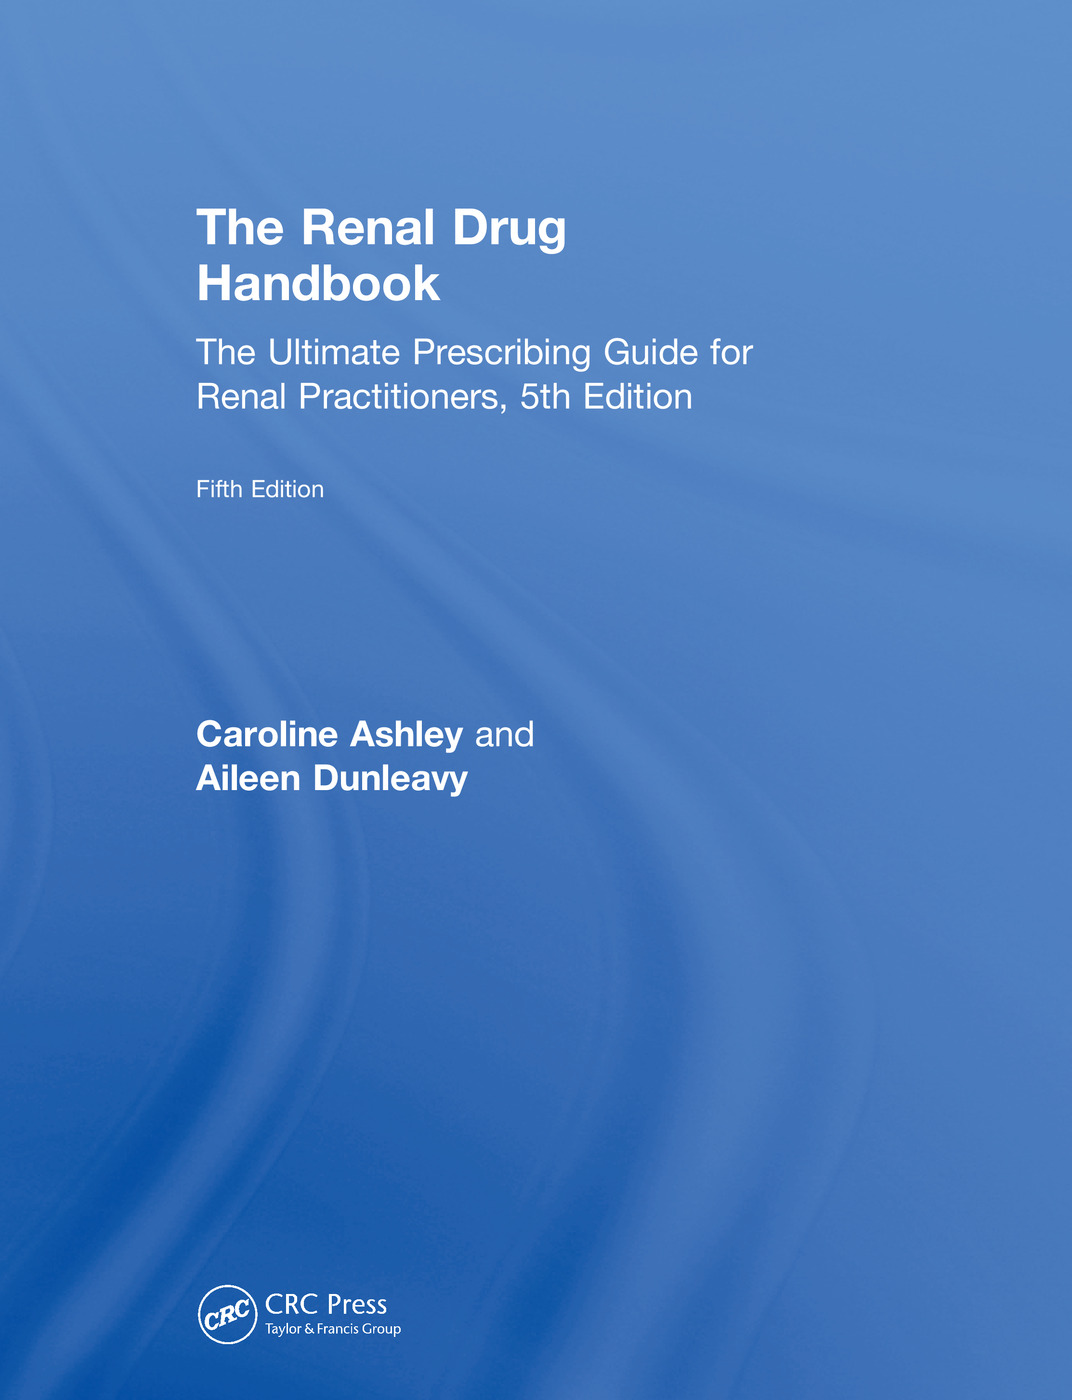 The Renal Drug Handbook: The Ultimate Prescribing Guide for Renal Practitioners, 5th Edition, 5th Edition (Hardback) book cover